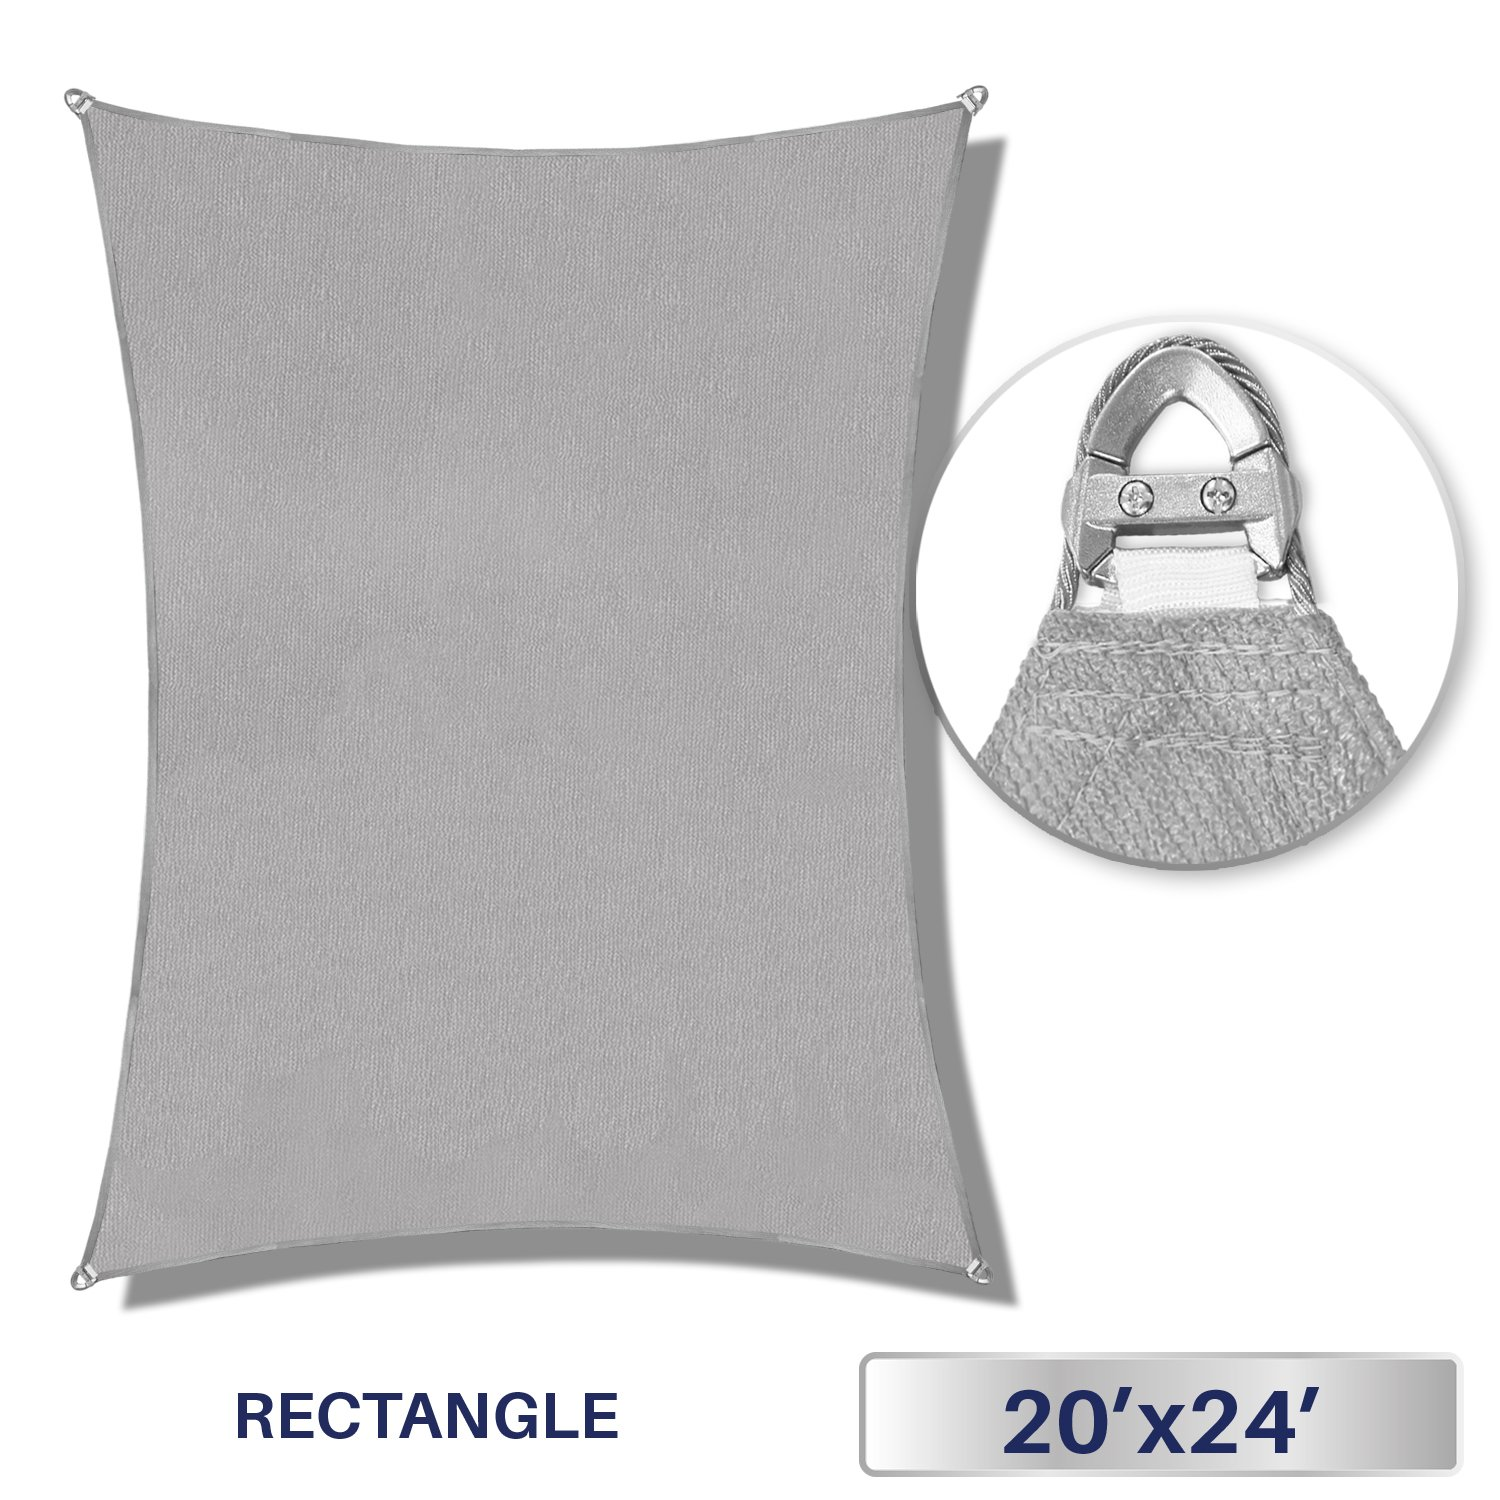 Windscreen4less A-Ring Reinforcement Large Sun Shade Sail 20' x 24' Rectangle Super Heavy Duty Strengthen Durable(260GSM)-Galvanized Cable Enhanced - Light Grey / 7 Year Warranty by Windscreen4less